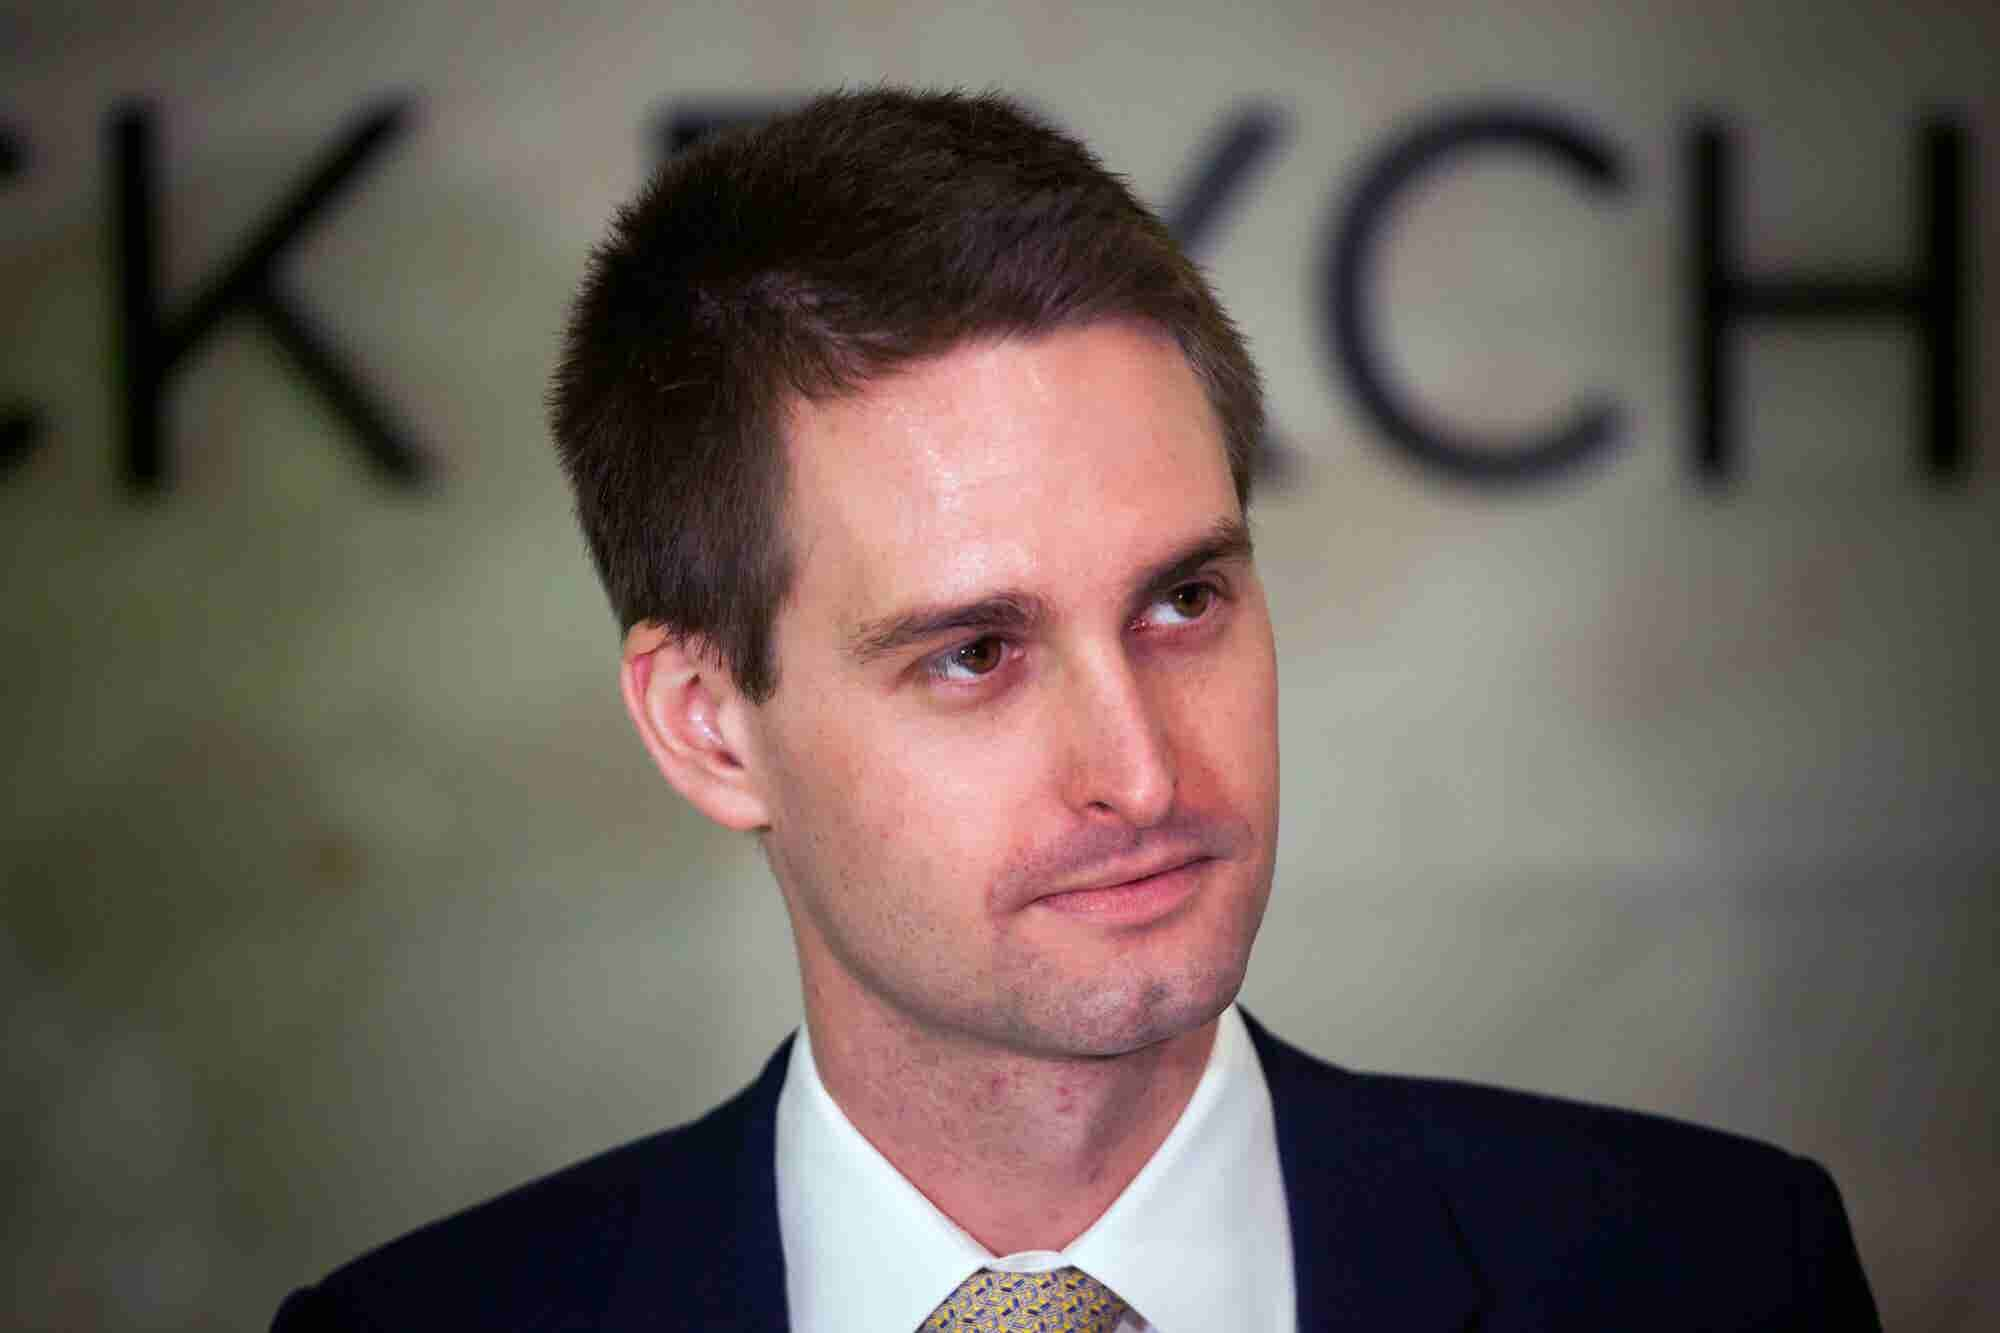 In Leaked Memo to Snap Employees, CEO Evan Spiegel Argues Snap's Competitive Advantage Is That It's Not a Social Media Company